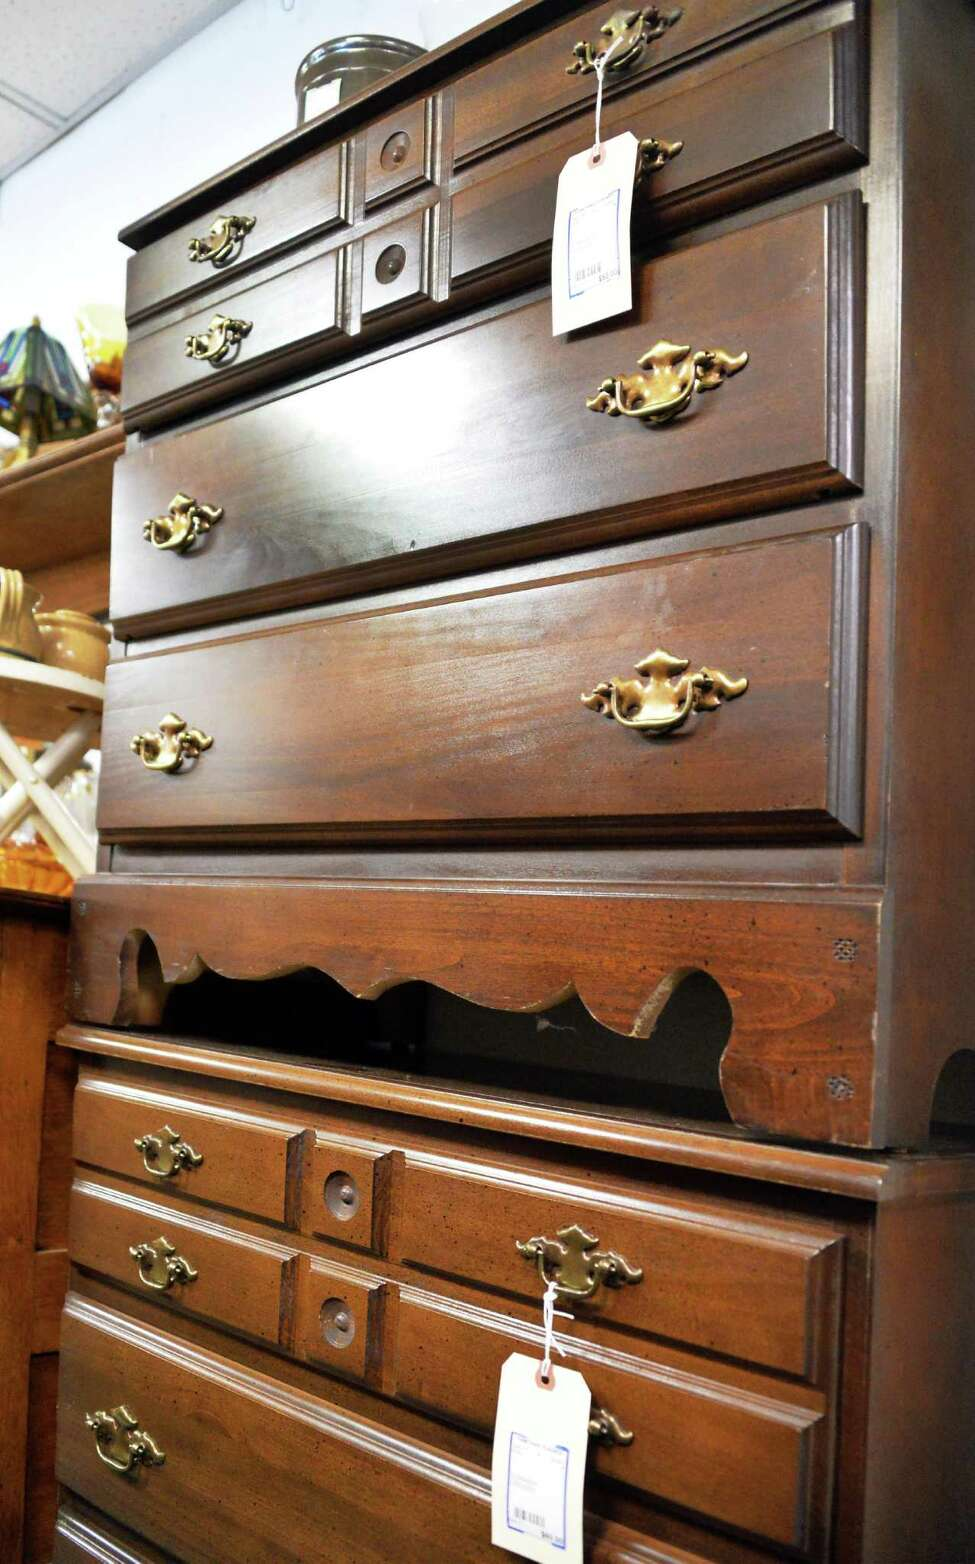 Three drawer dressers at Something Olde, Something New Tuesday, May 13, 2014, in Slingerlands, N.Y. (John Carl D'Annibale / Times Union)